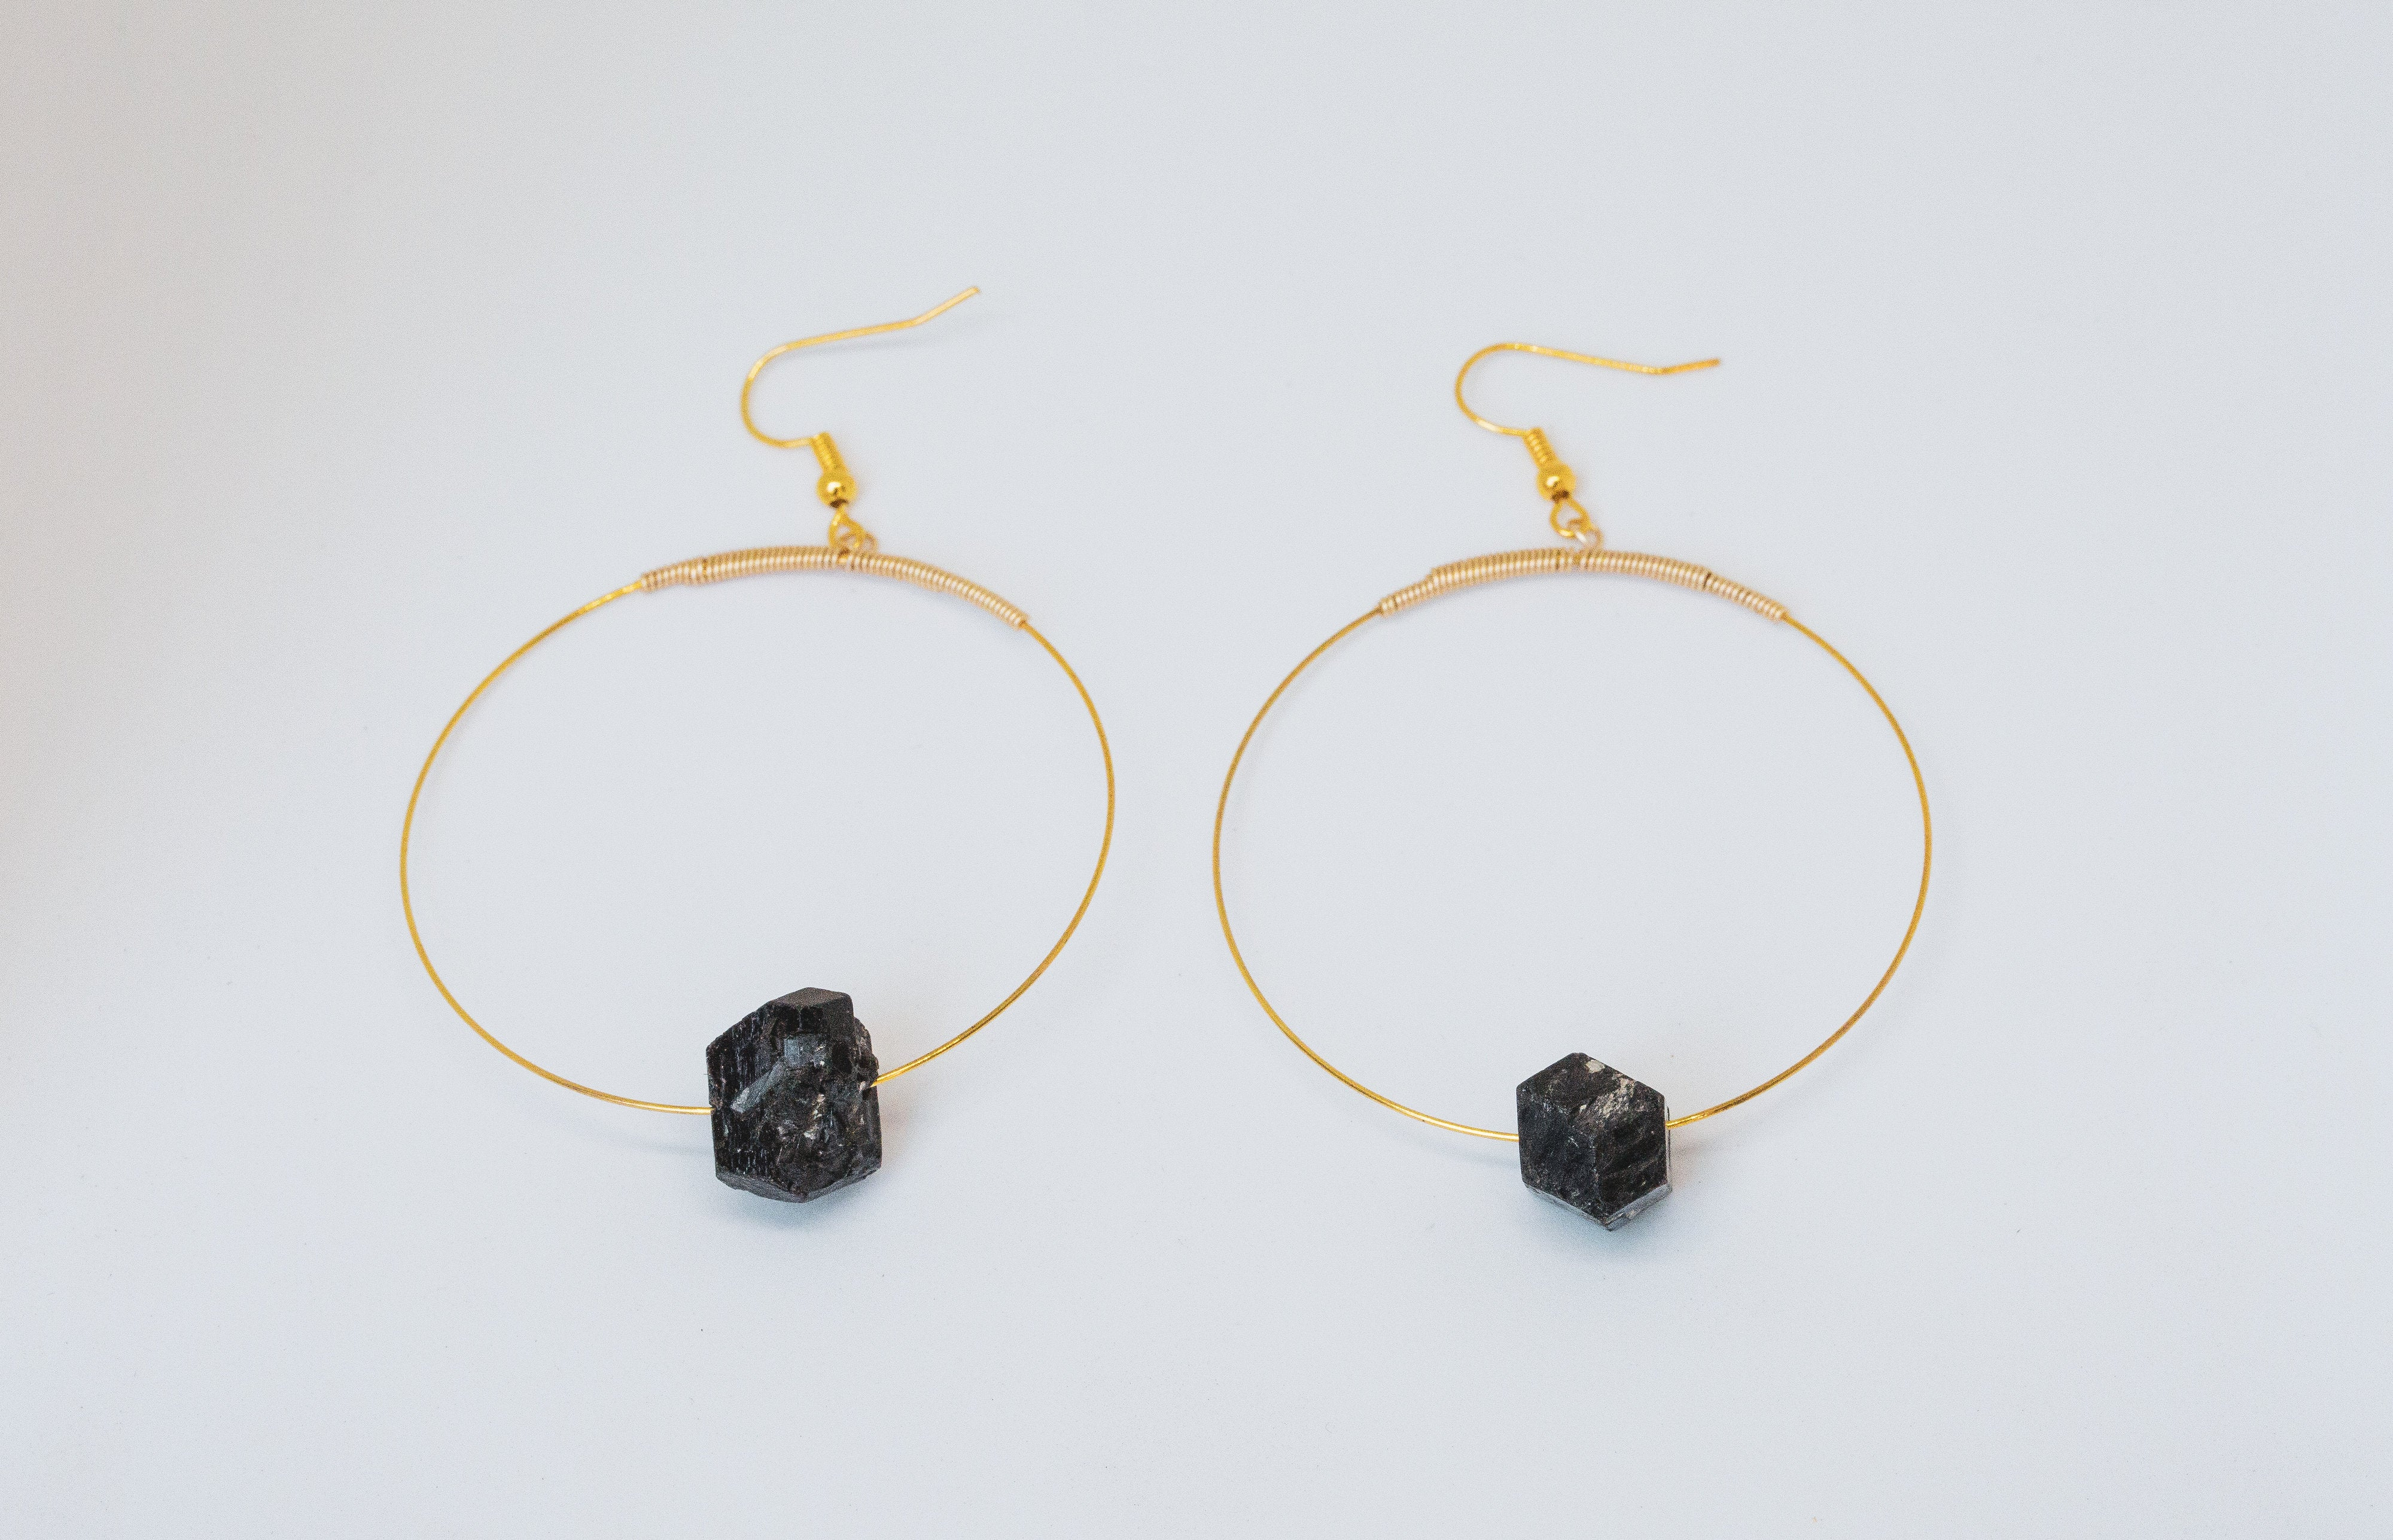 Bastet - Black Tourmaline Hoop Earrings